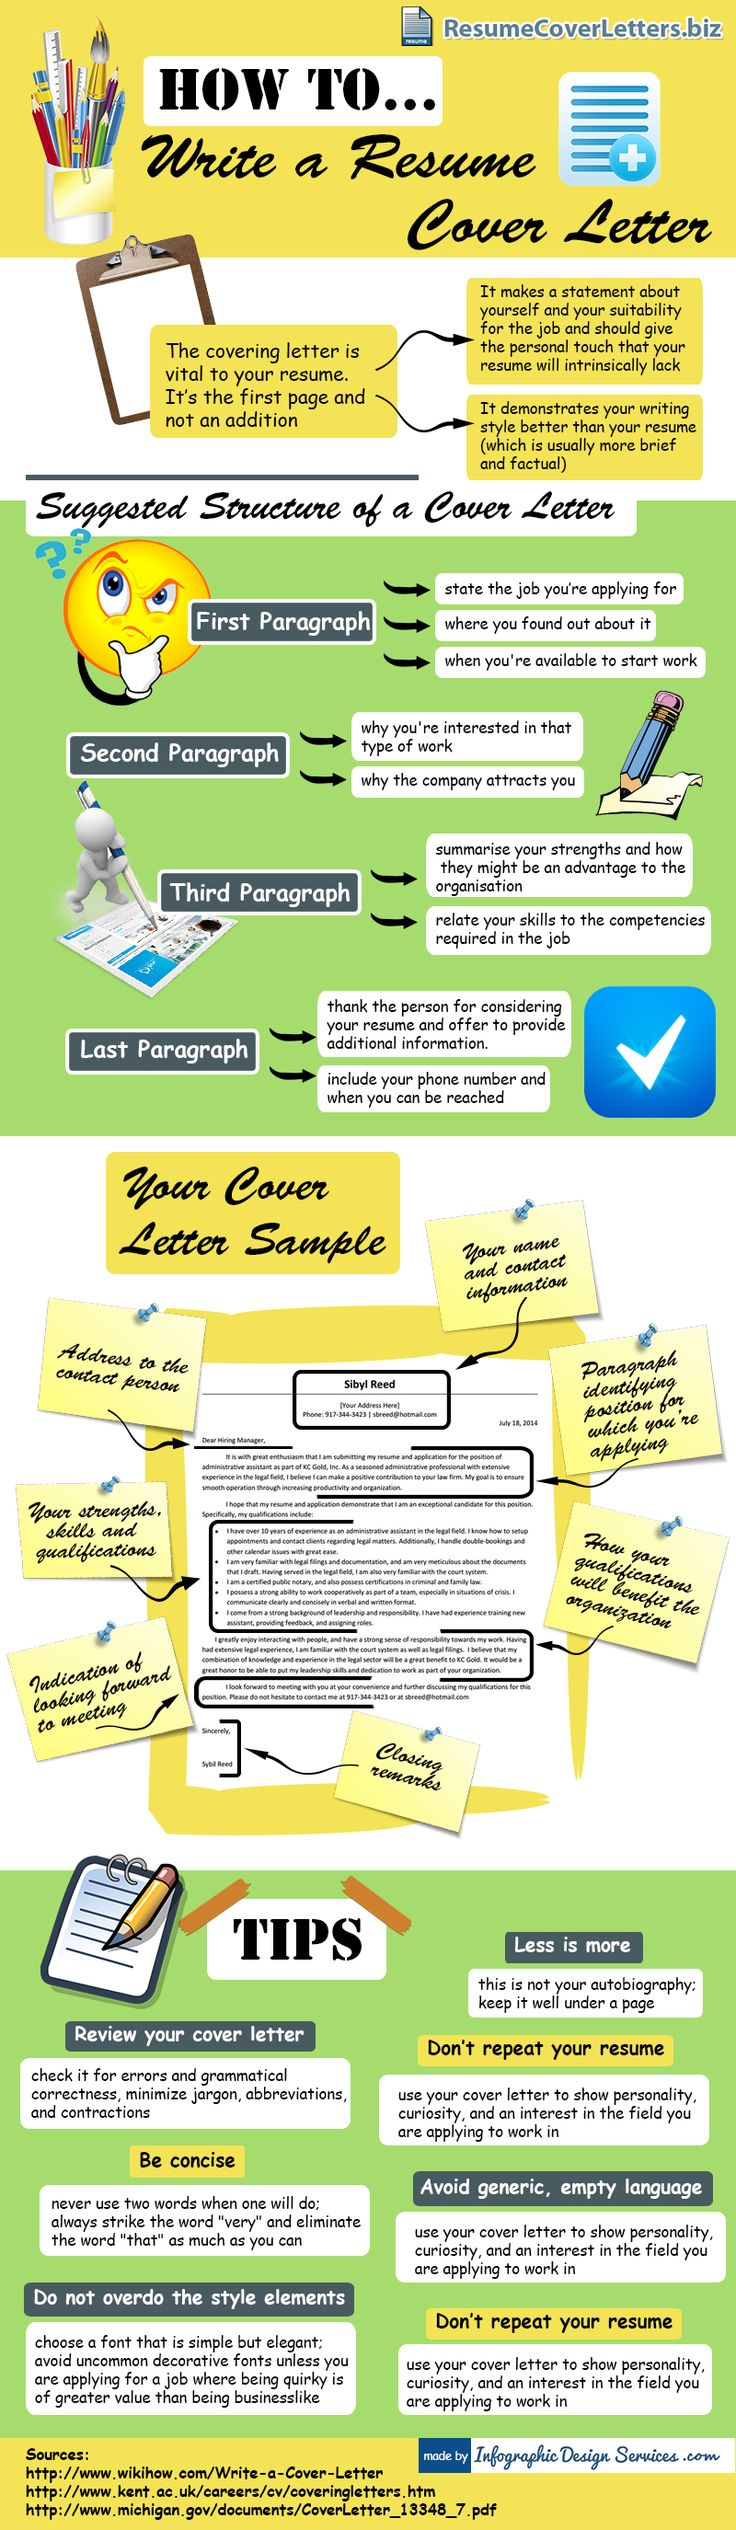 resume cover letter writing tips - Tips For Cover Letter Writing